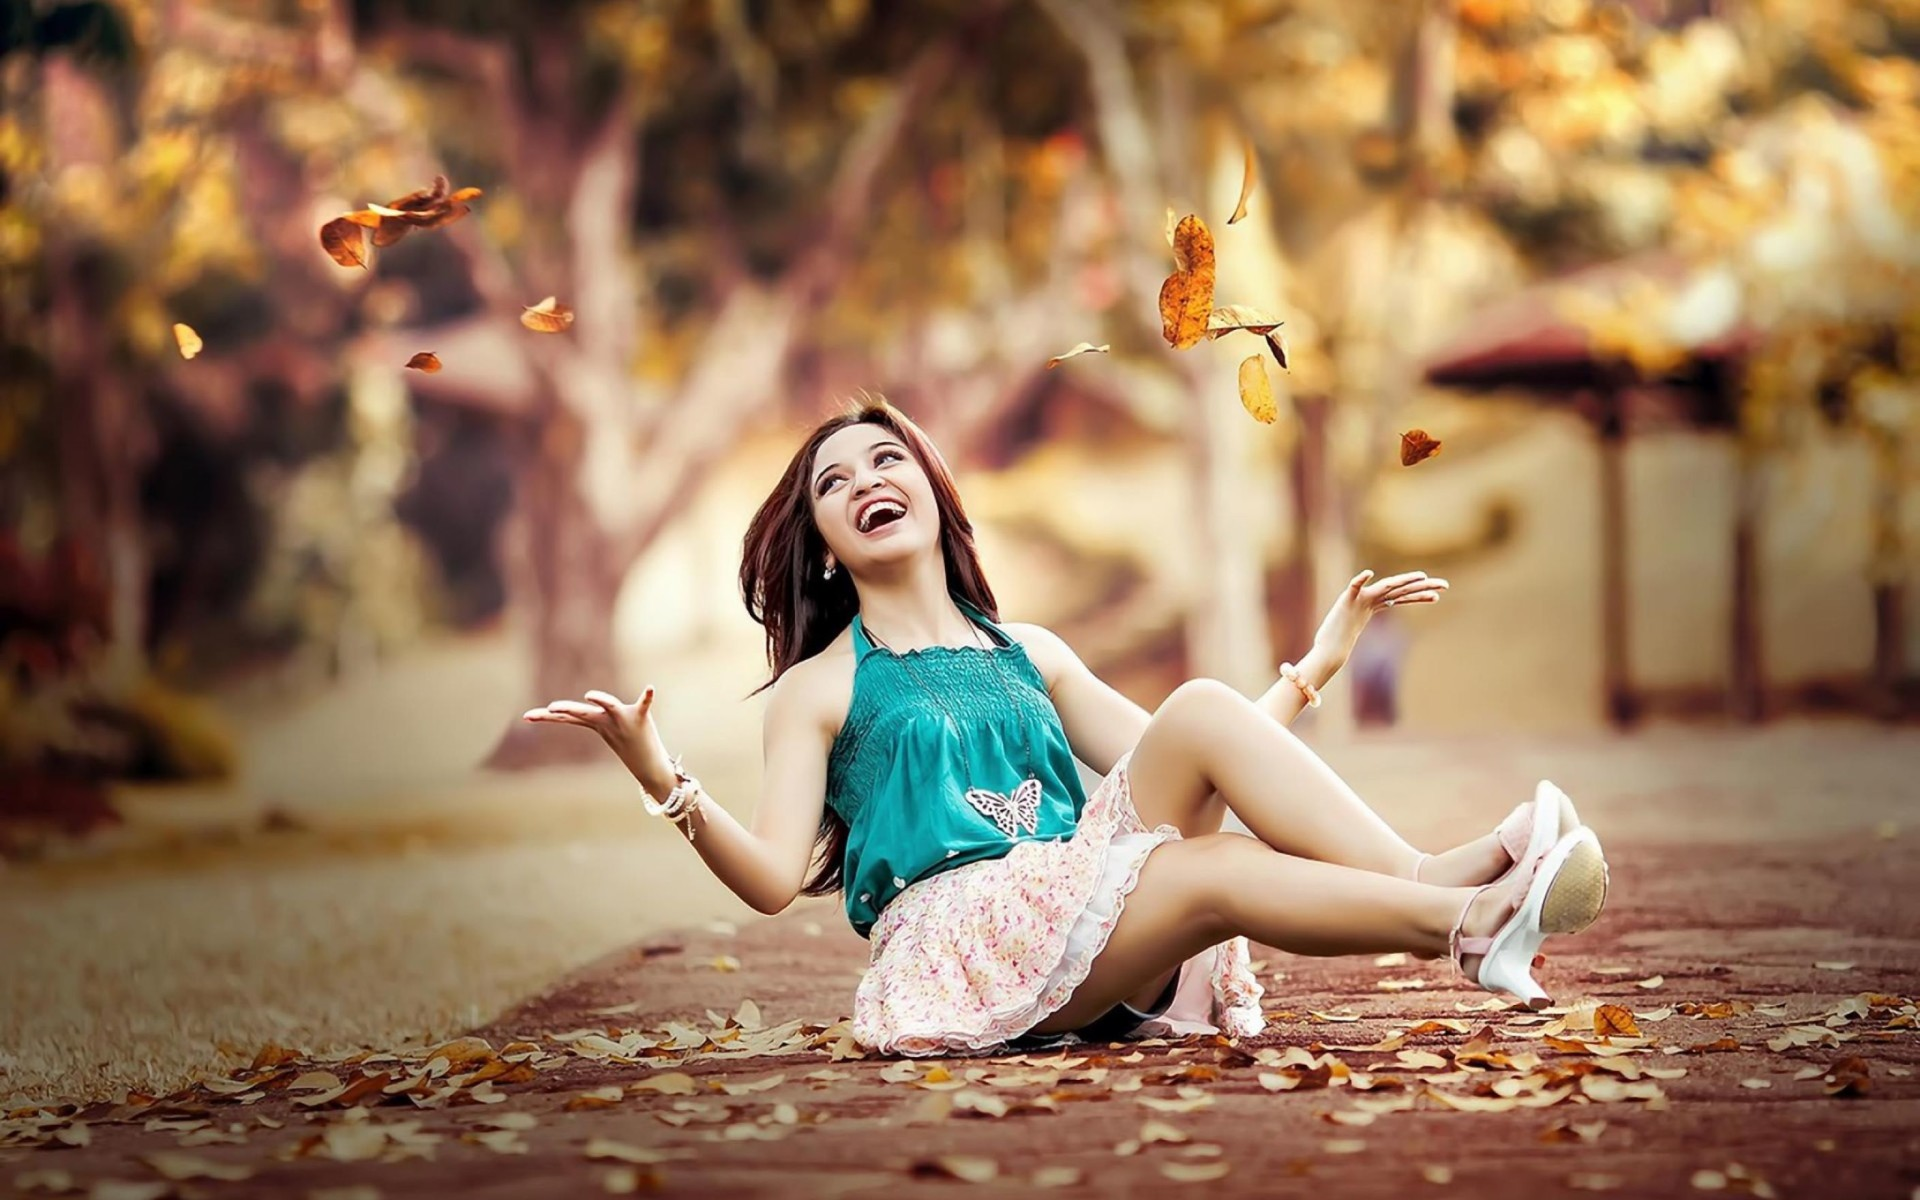 Beauty Girl Pavement Leaves Autumn Wallpaper